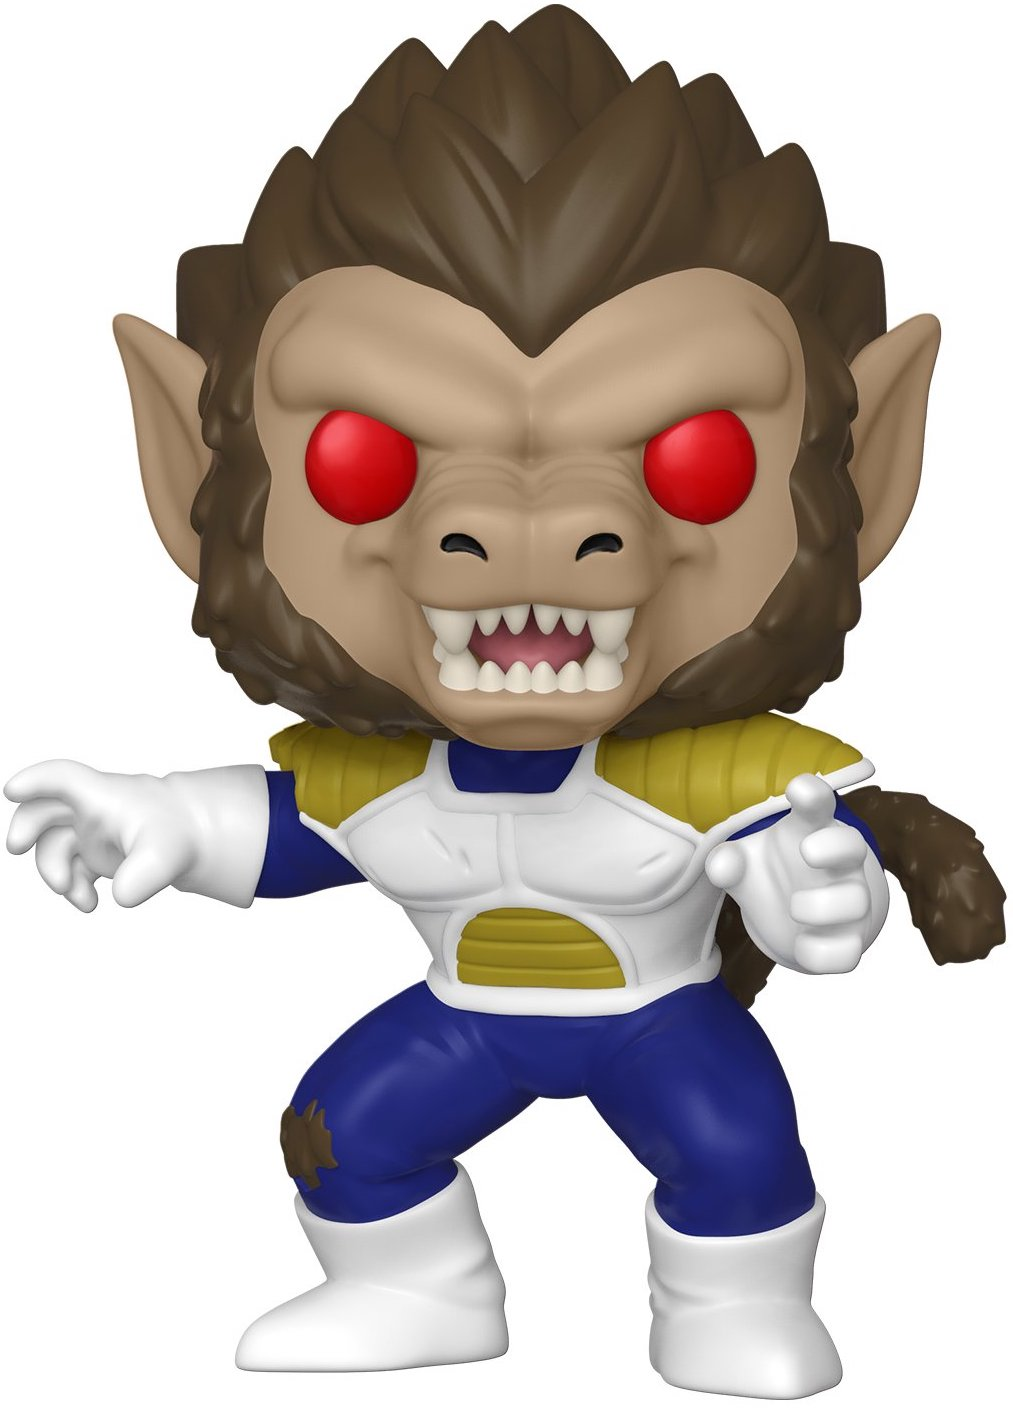 Funko Pop! Animation Vegeta (Great Ape) - 6""